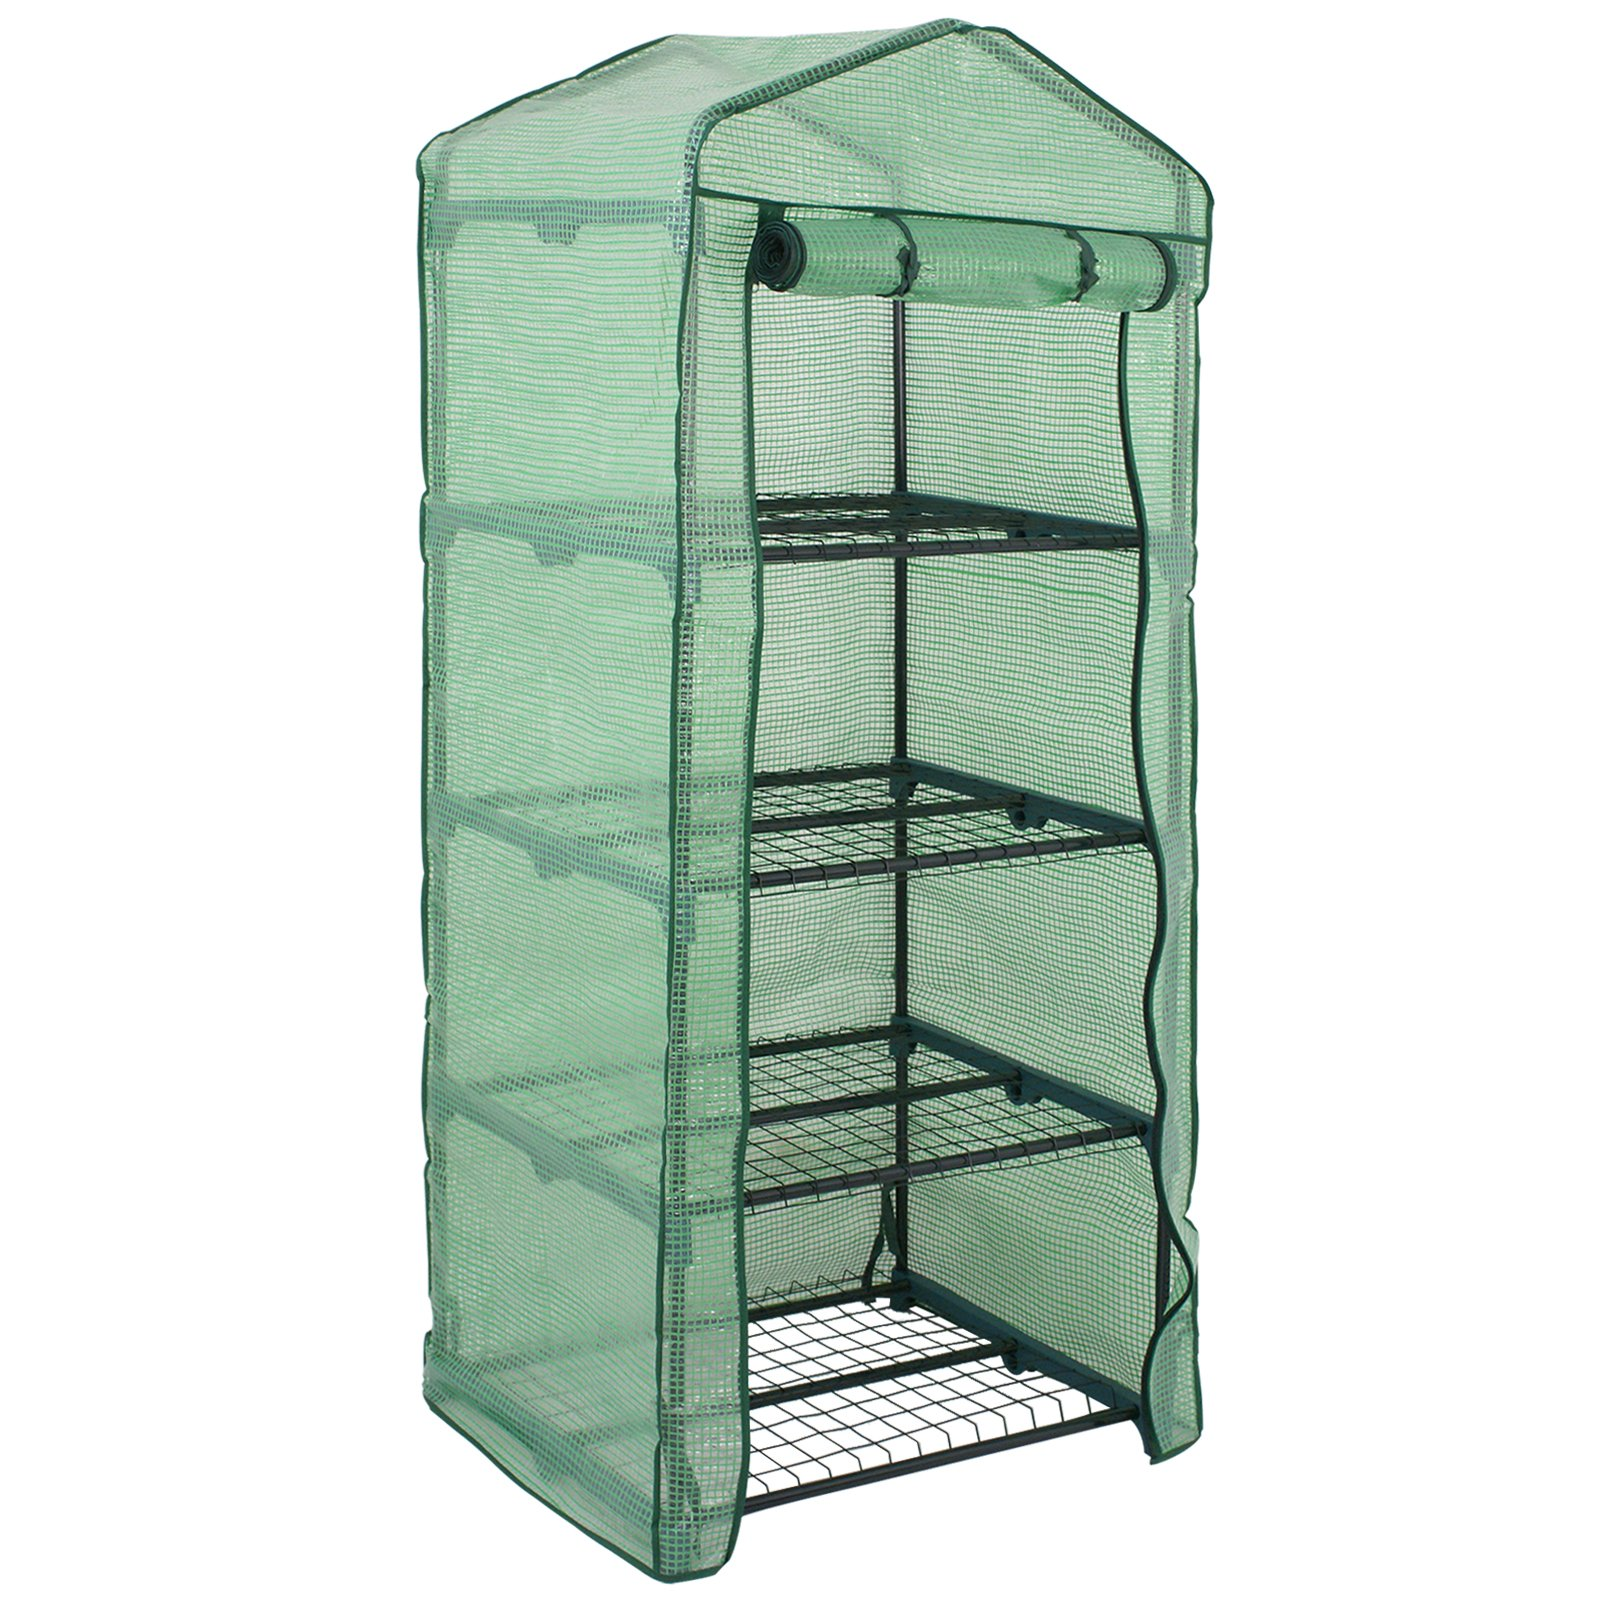 4 Tier Mini Greenhouse with PE Cover and Roll-Up Zipper Door, Waterproof Cloche Portable Greenhouse Tent-27.25'' L X 19'' W x 63'' H, Grow Seeds & Seedlings, Tend Potted Plants (1pcs) by Nova Microdermabrasion (Image #1)